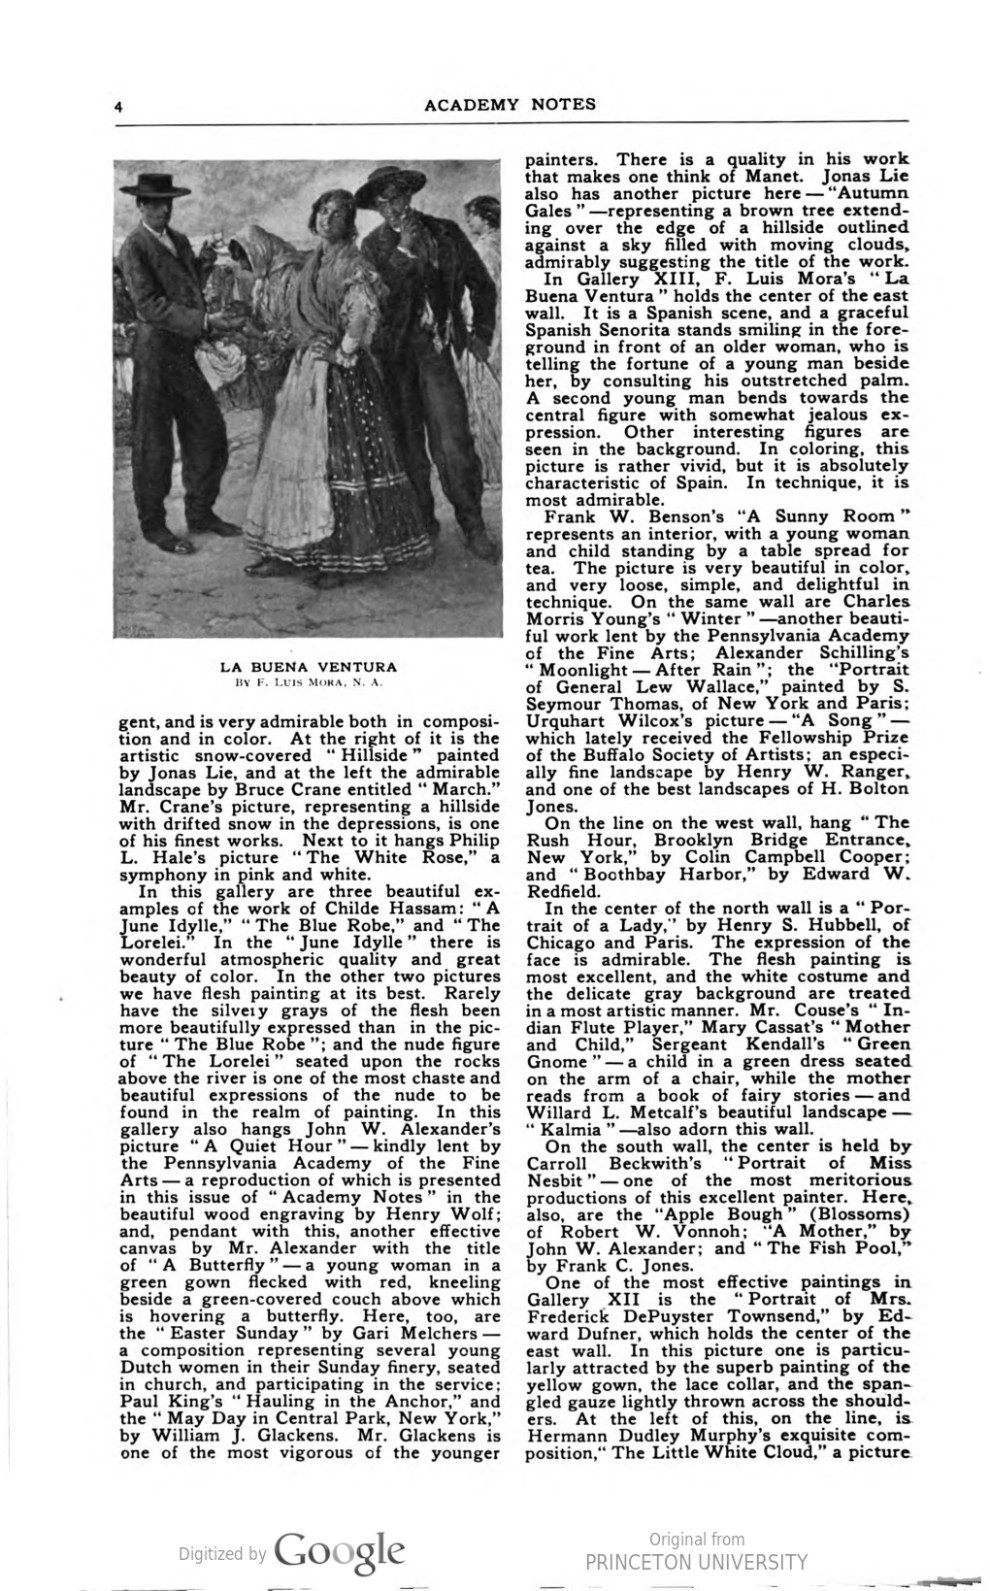 """Academy Notes, Buffalo Fine Arts Academy, Albright Art Gallery, Buffalo, NY, """"First Exhibition of Selected American Paintings at the Albright Gallery"""", June, 1906, Volume 2, Number 1, page 1-5, not illustrated"""